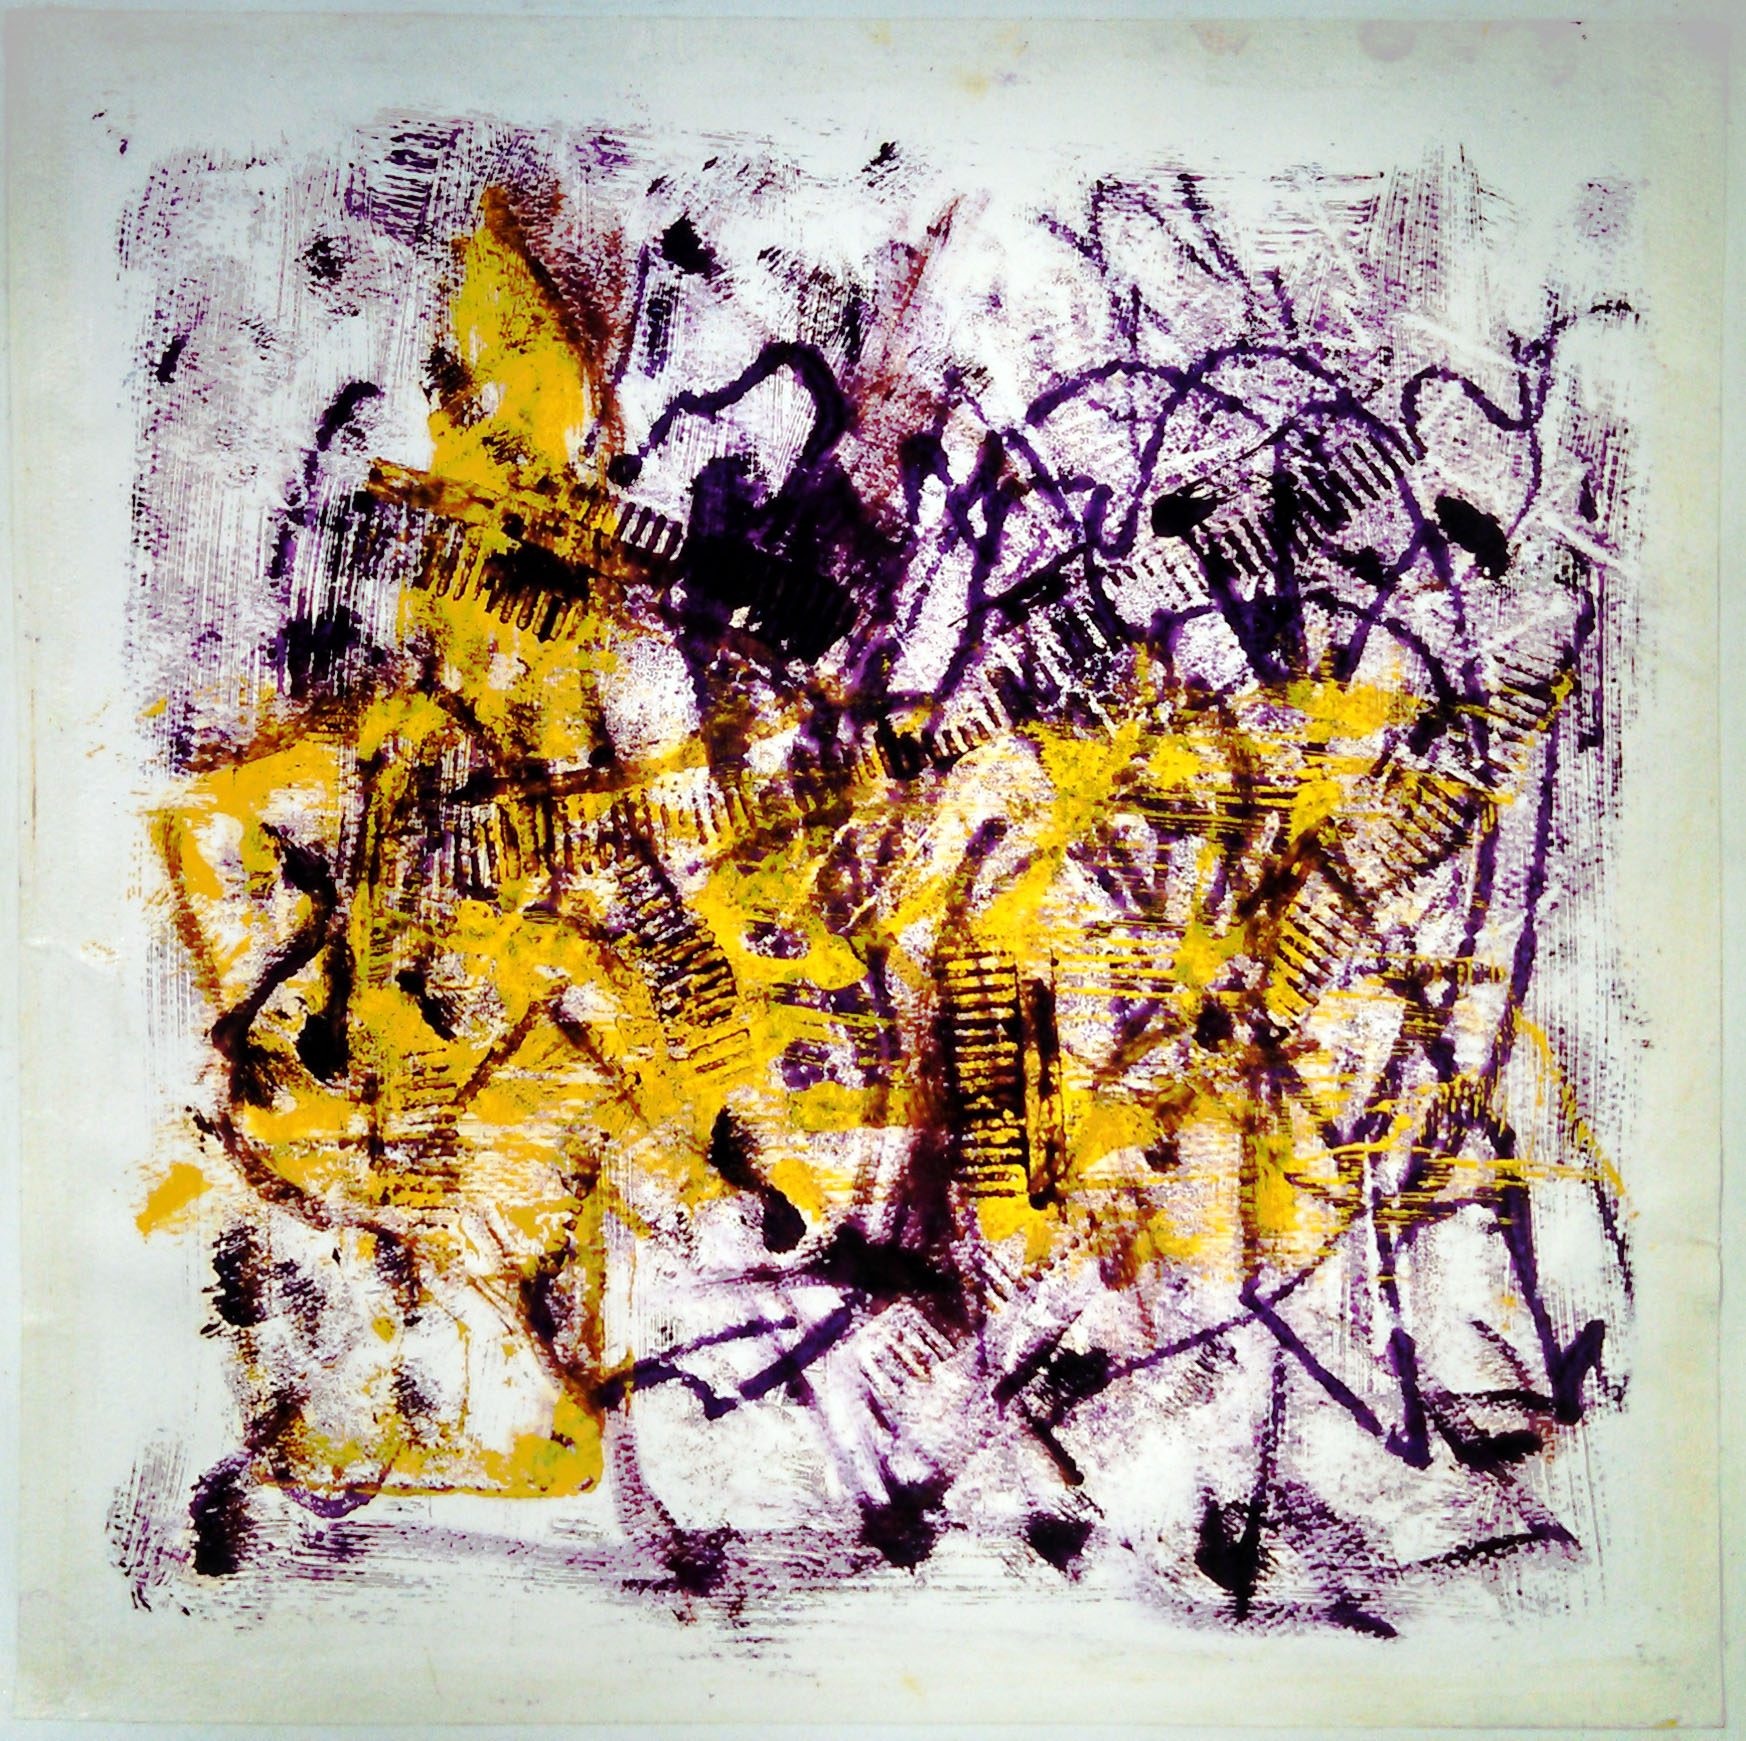 "Accordion lines,  2014, monotype (oil transfer), 12"" x 12"" (30cm x 30cm)"